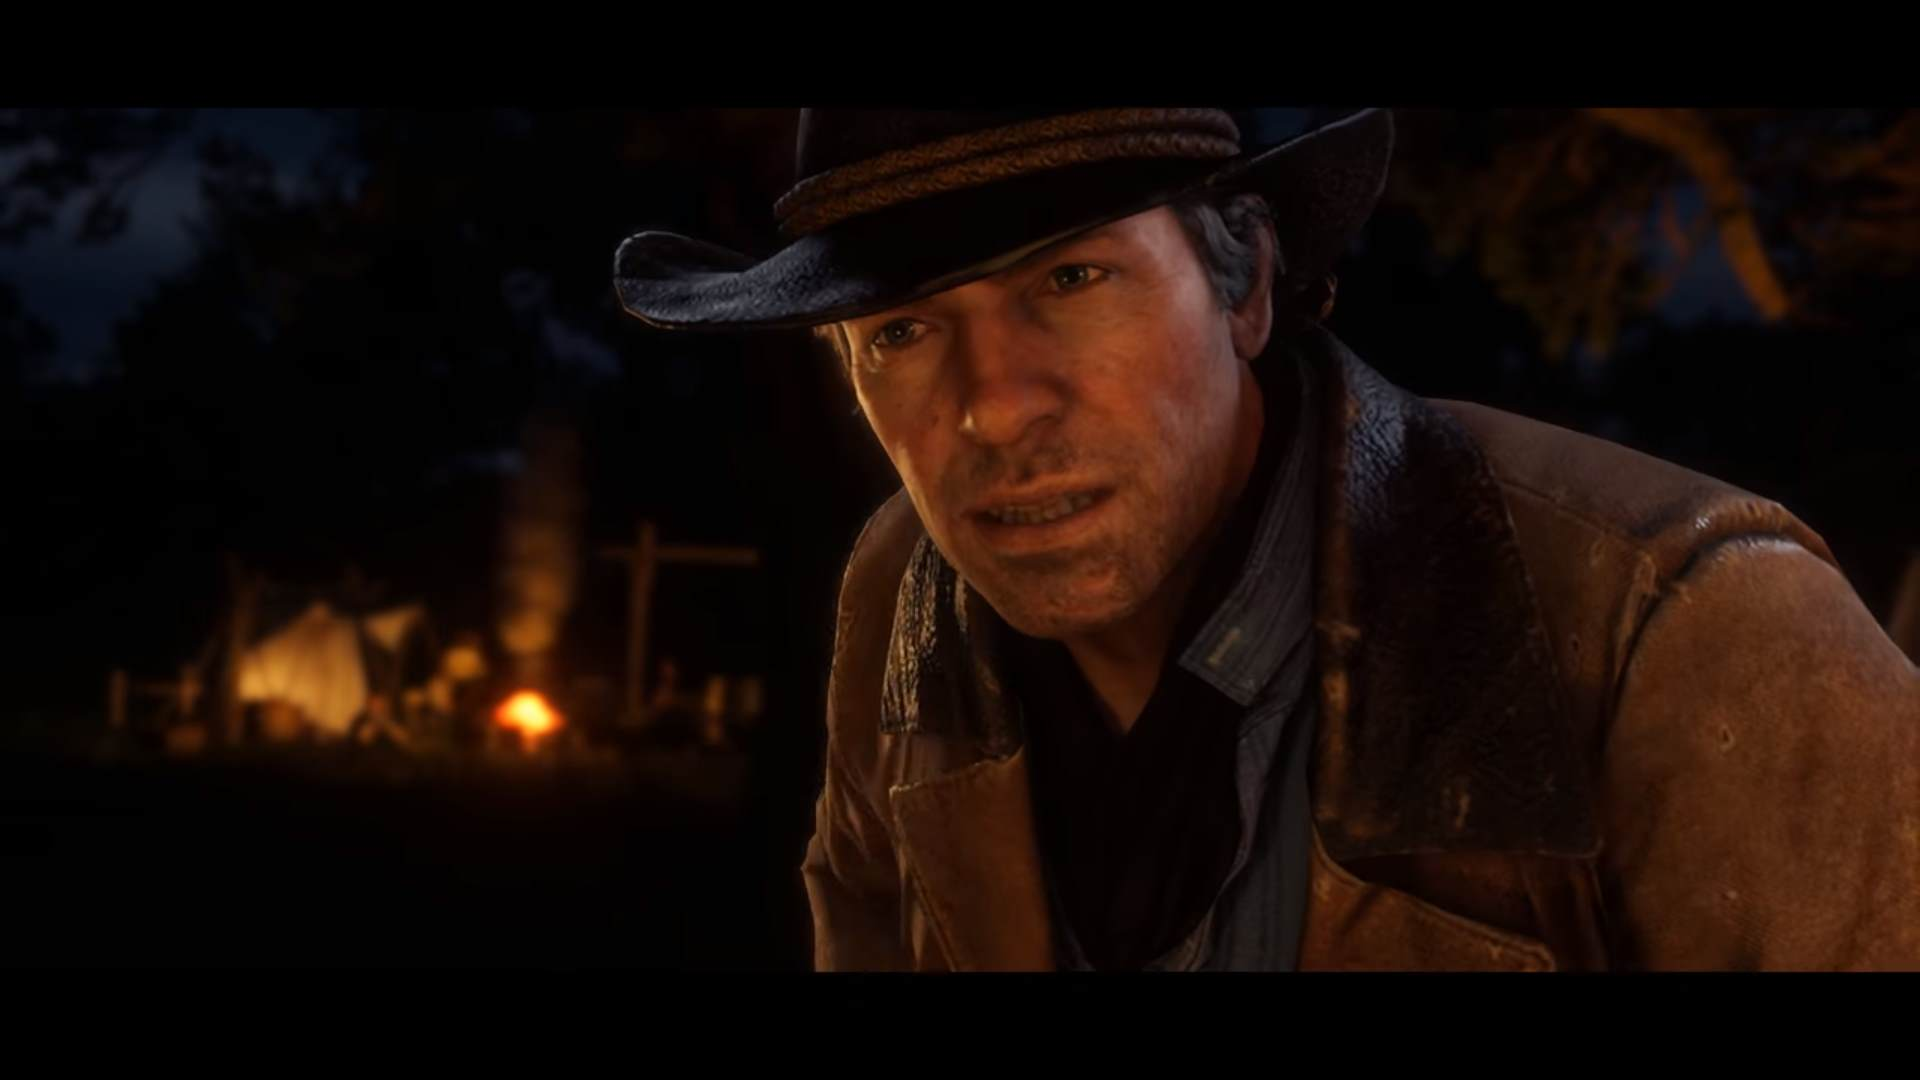 Second Trailer For Red Dead Redemption 2 Released By Rockstar Games Vgu